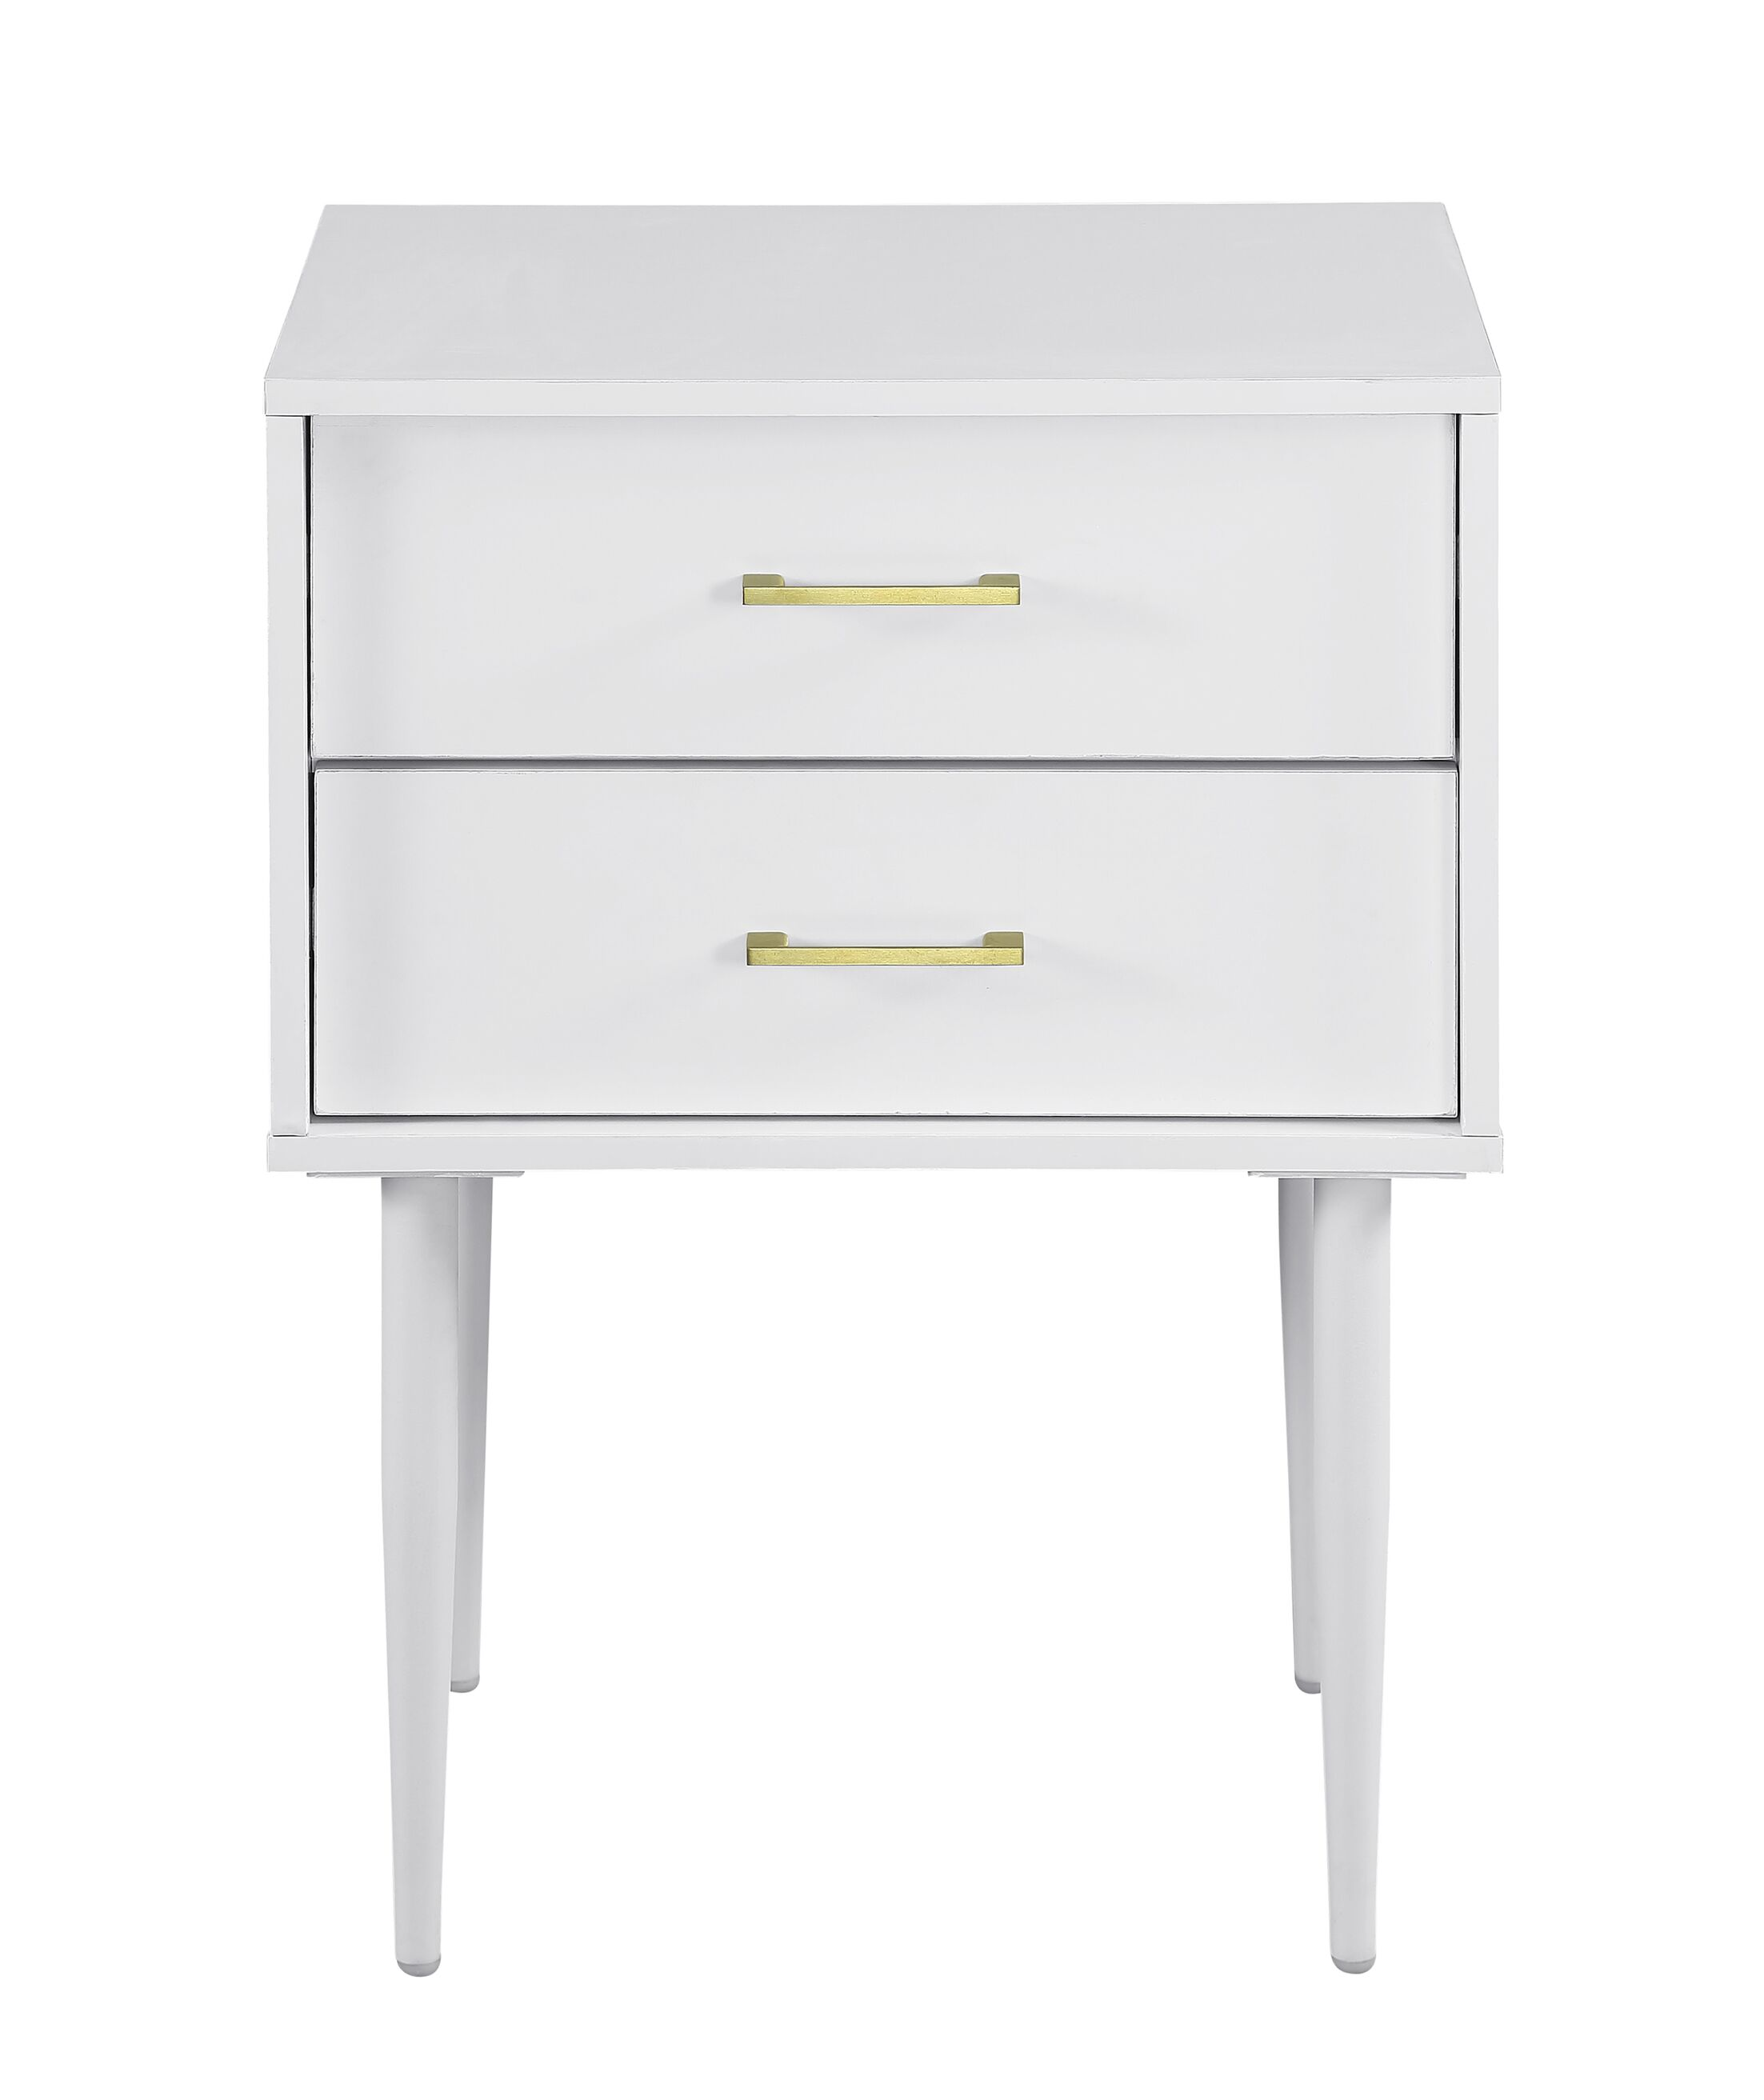 Winningham 2 Drawer End Table with Storage Color: White